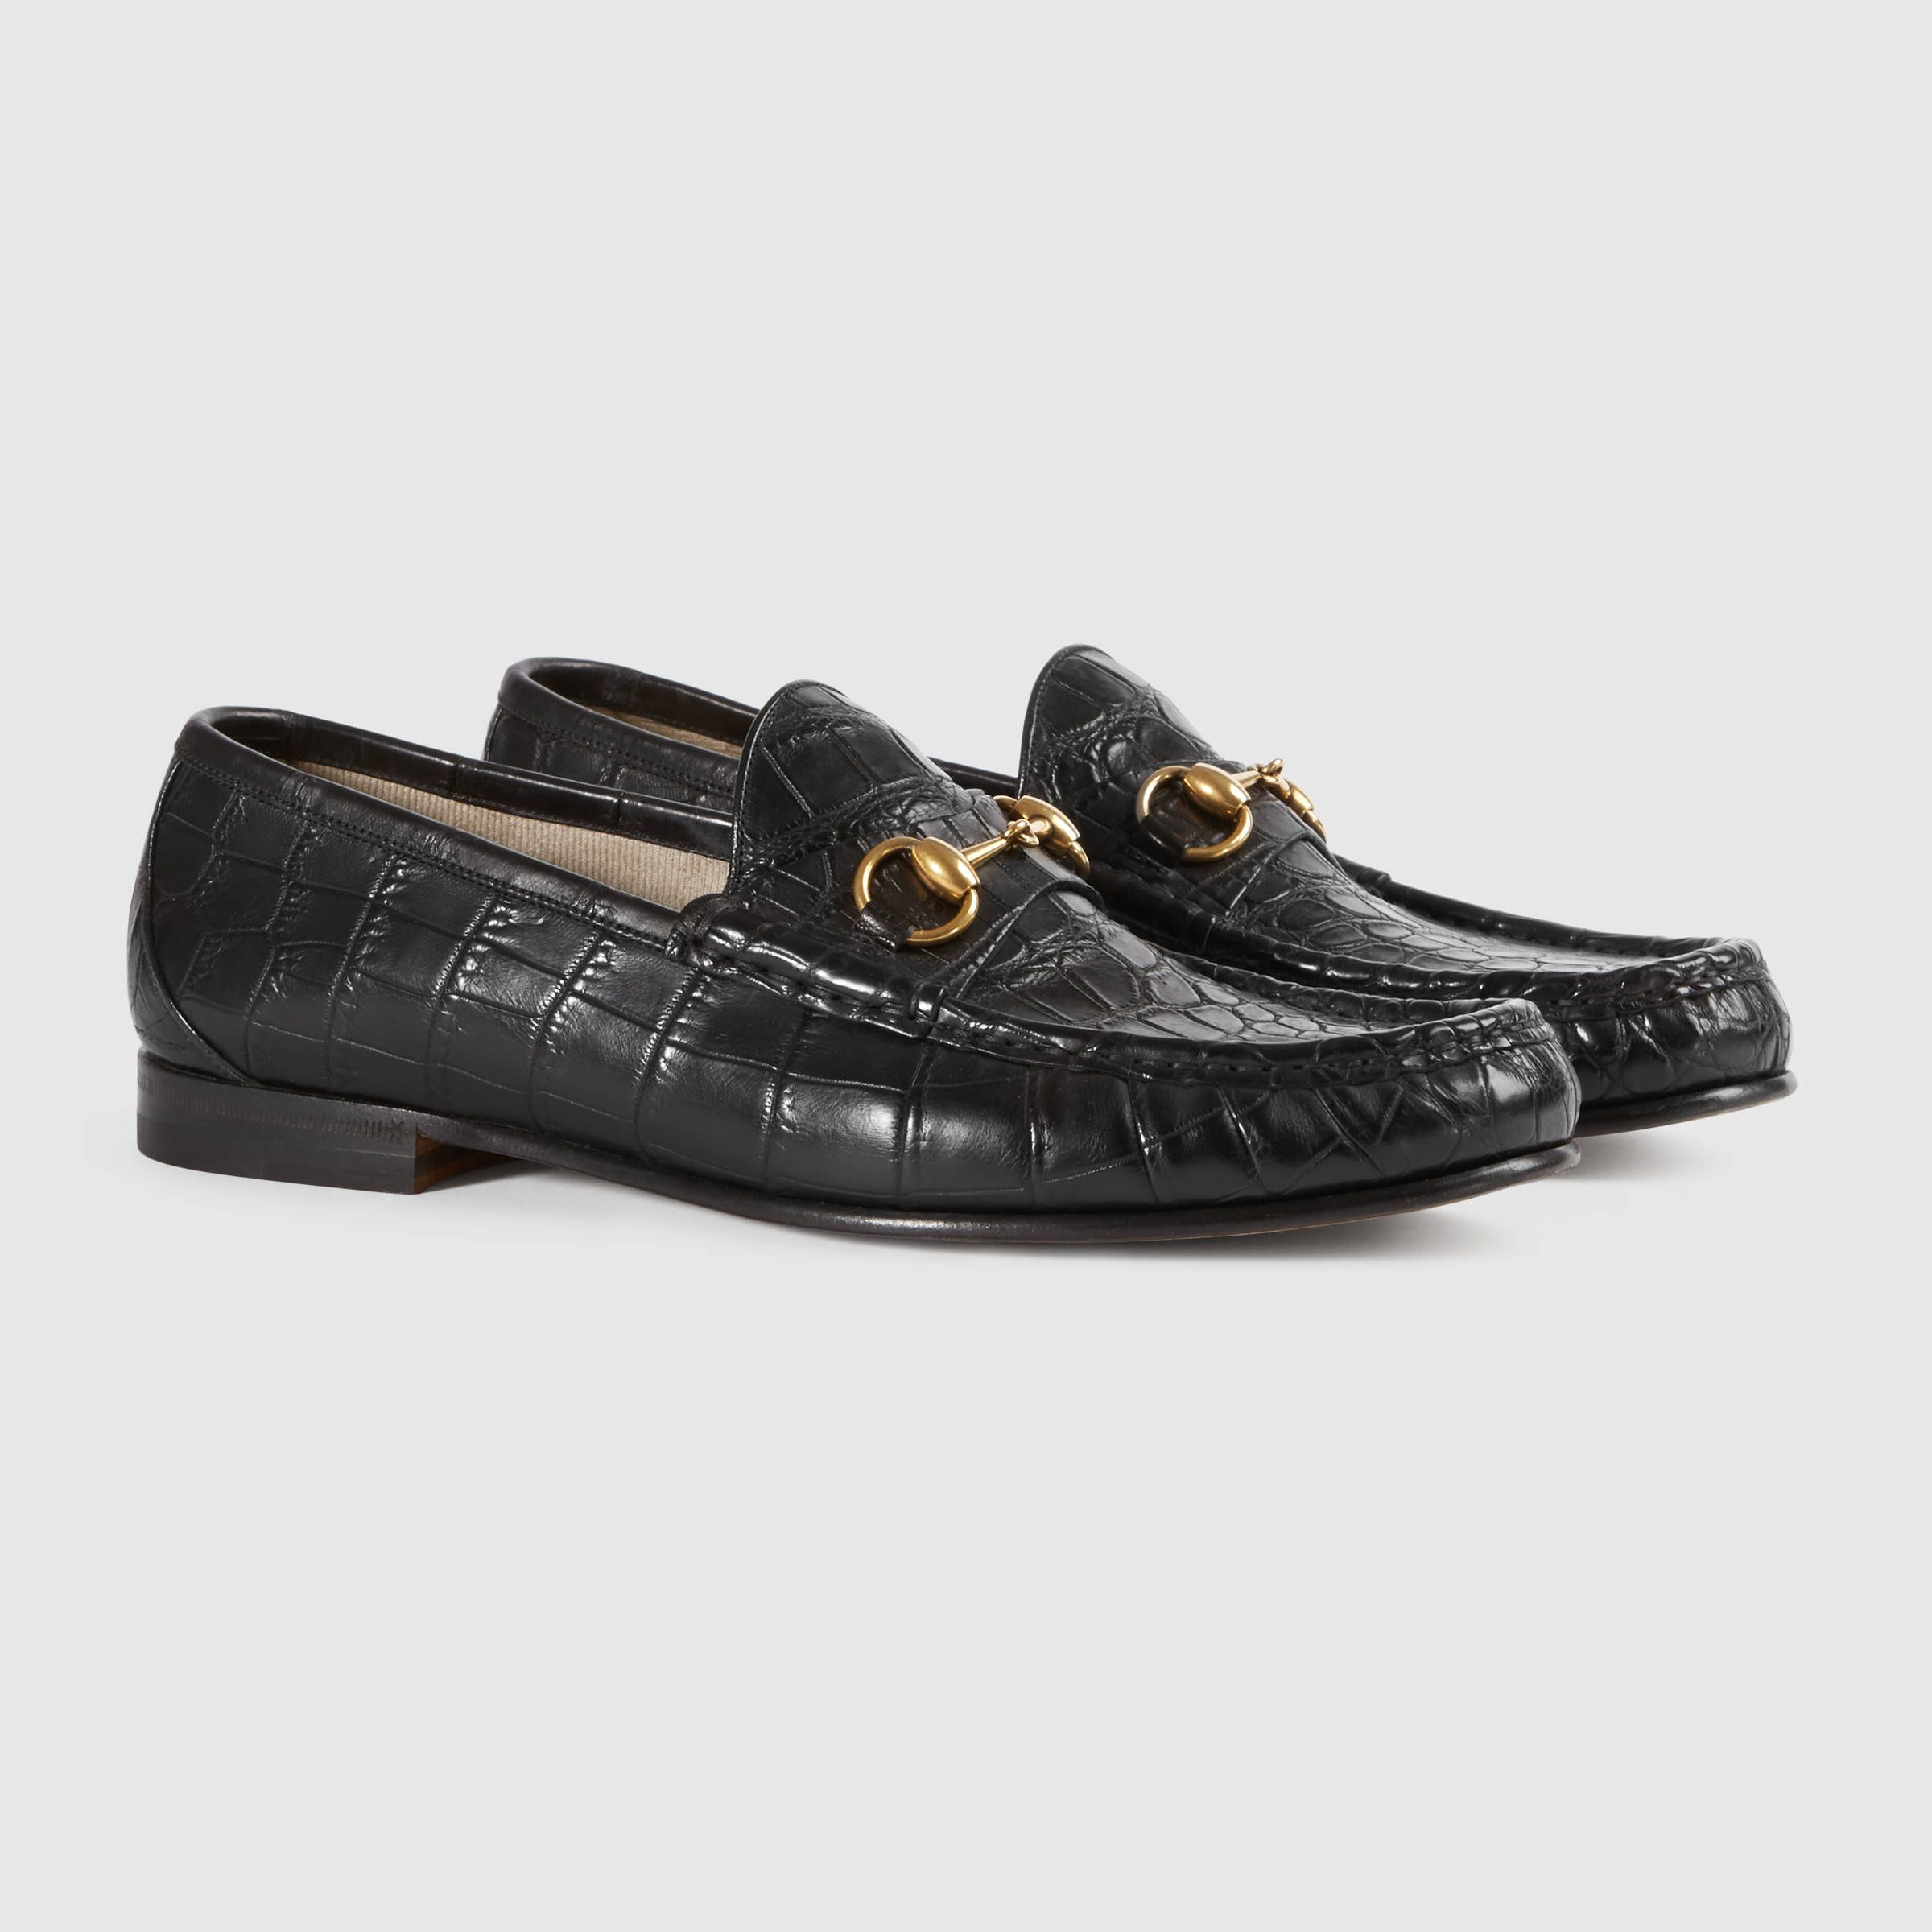 f26ca711c8c Gucci Men - 1953 Horsebit crocodile loafer - 307929EC2001000